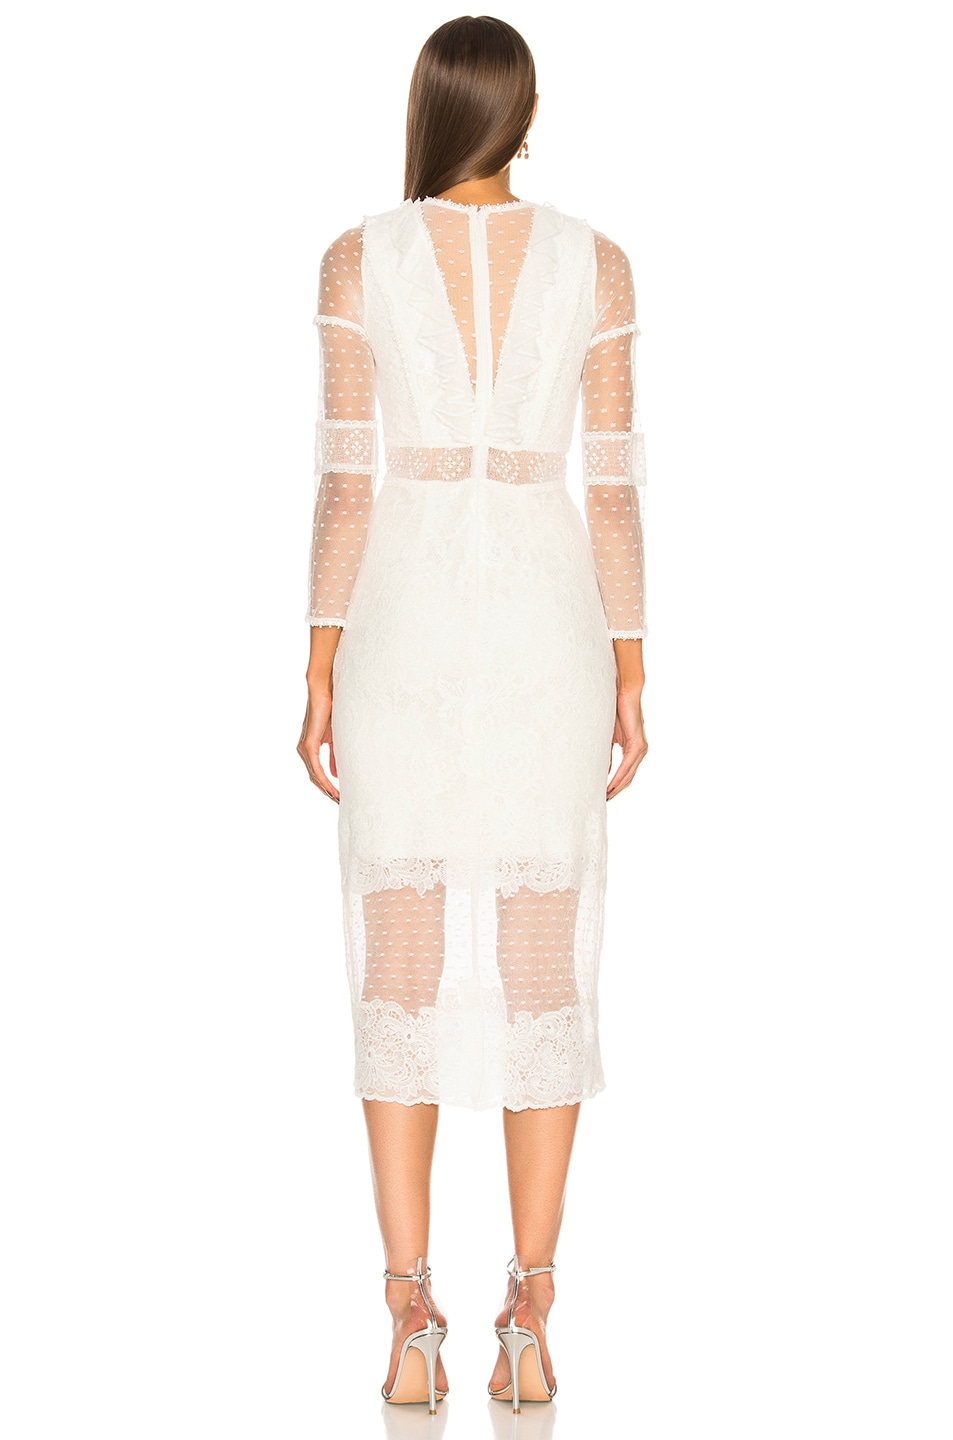 Image 3 of Alexis Elize Dress in White Lace